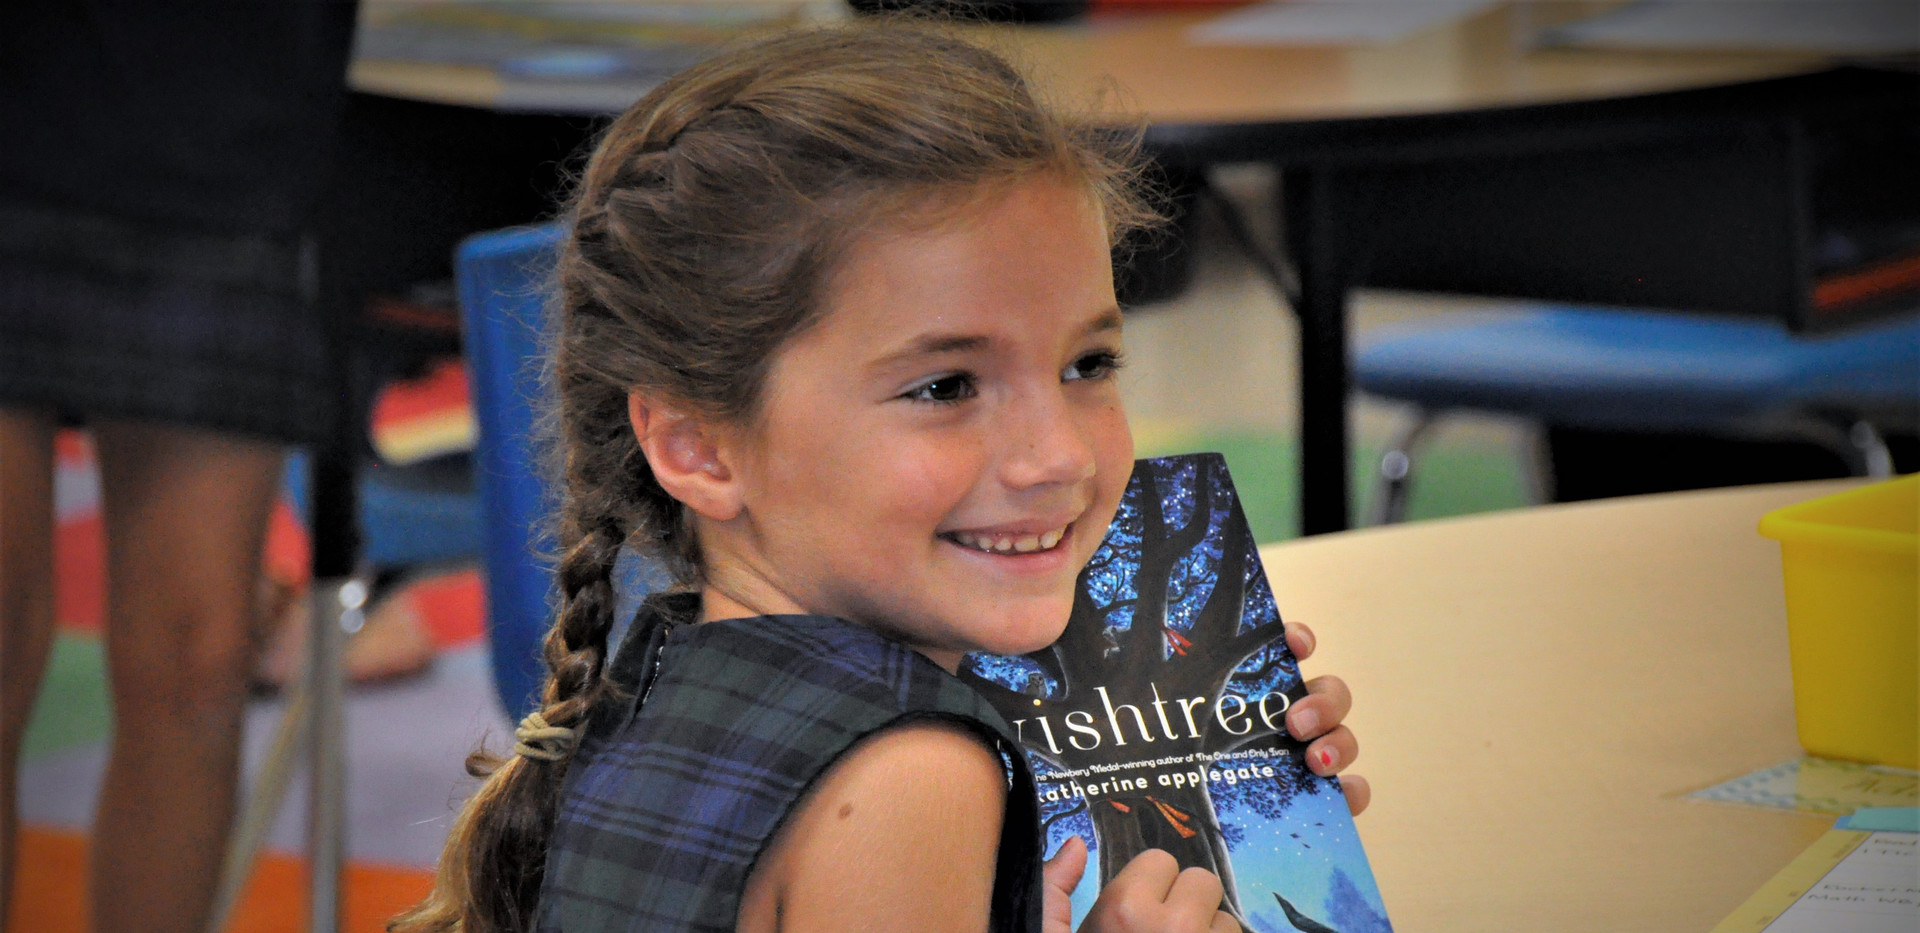 sessums- kid with new book fav.JPG